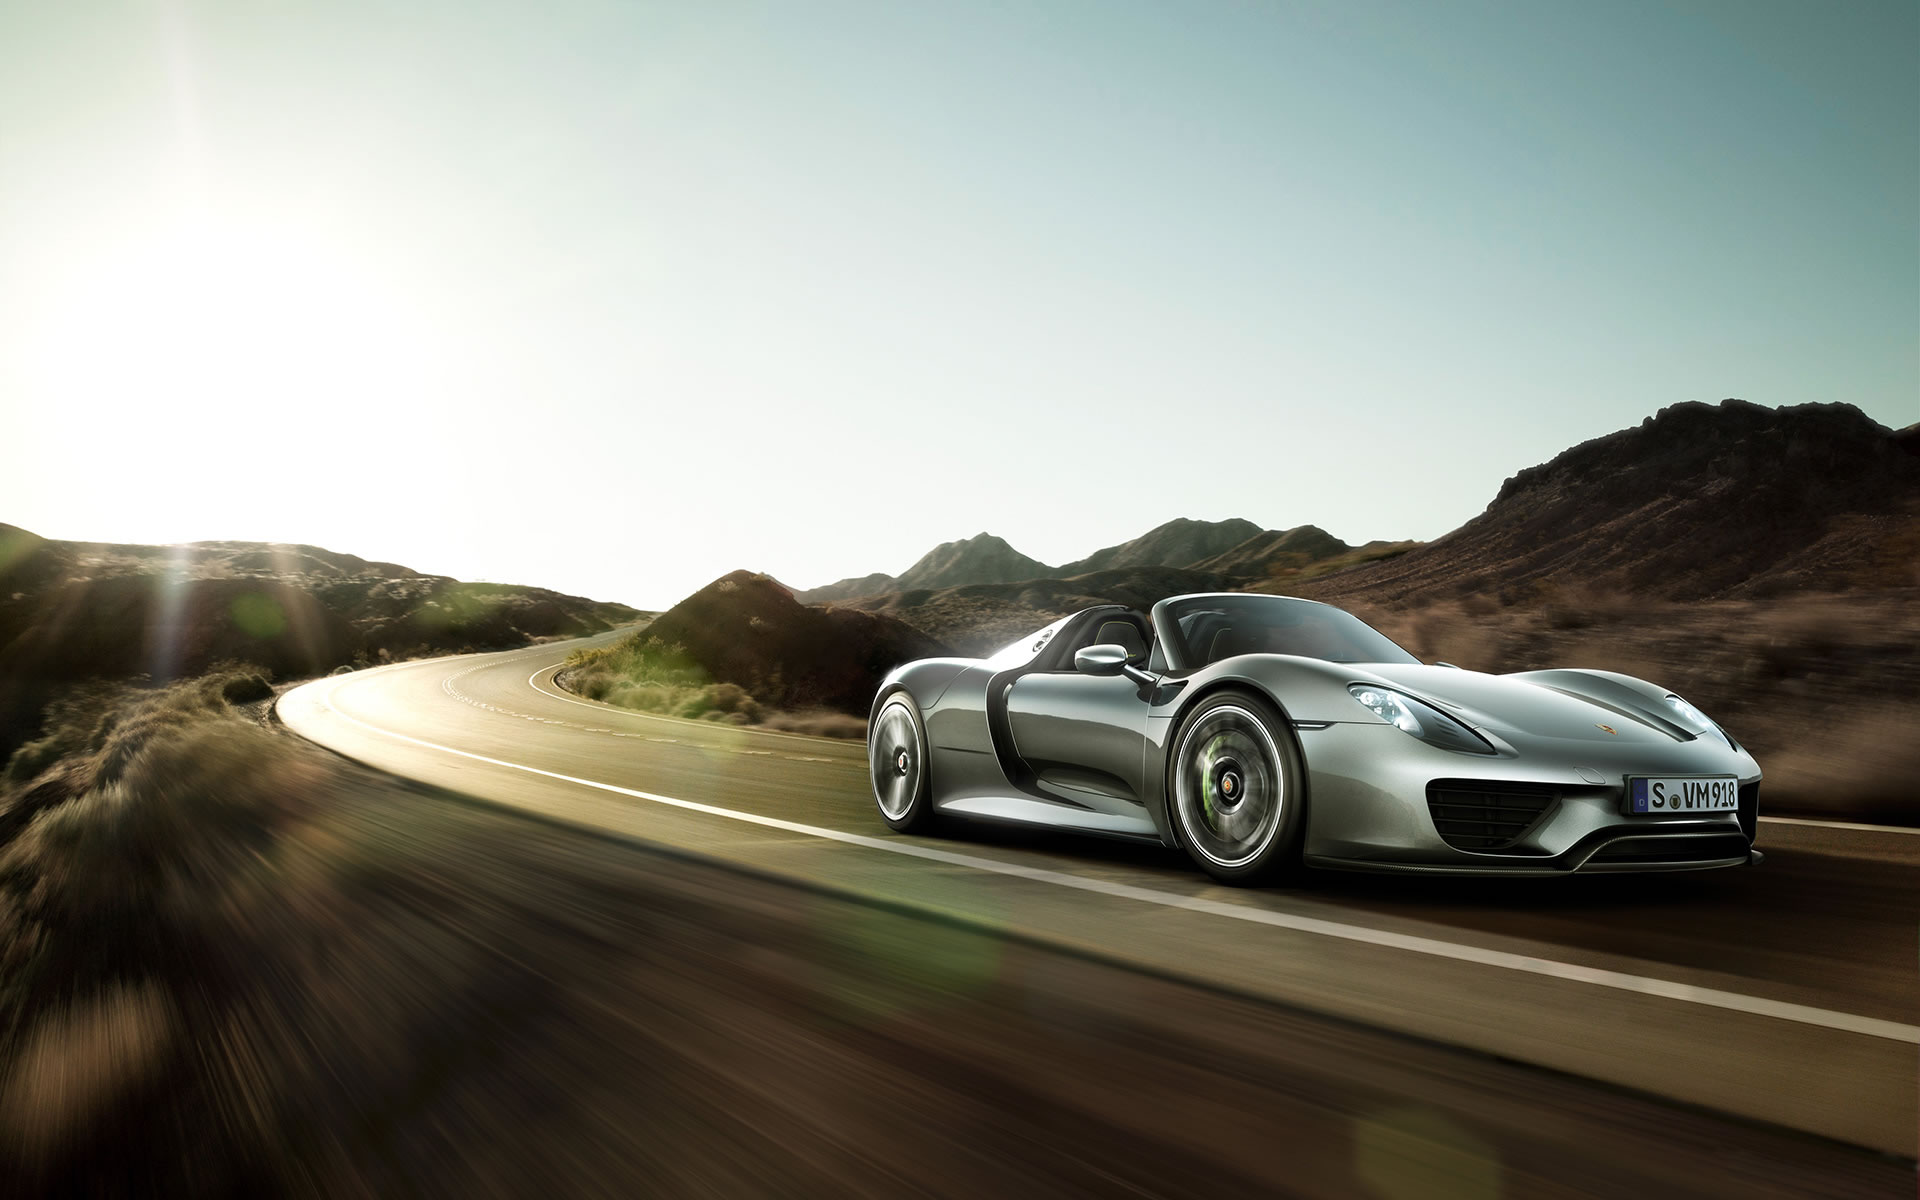 wallpapers of cars in full size #11